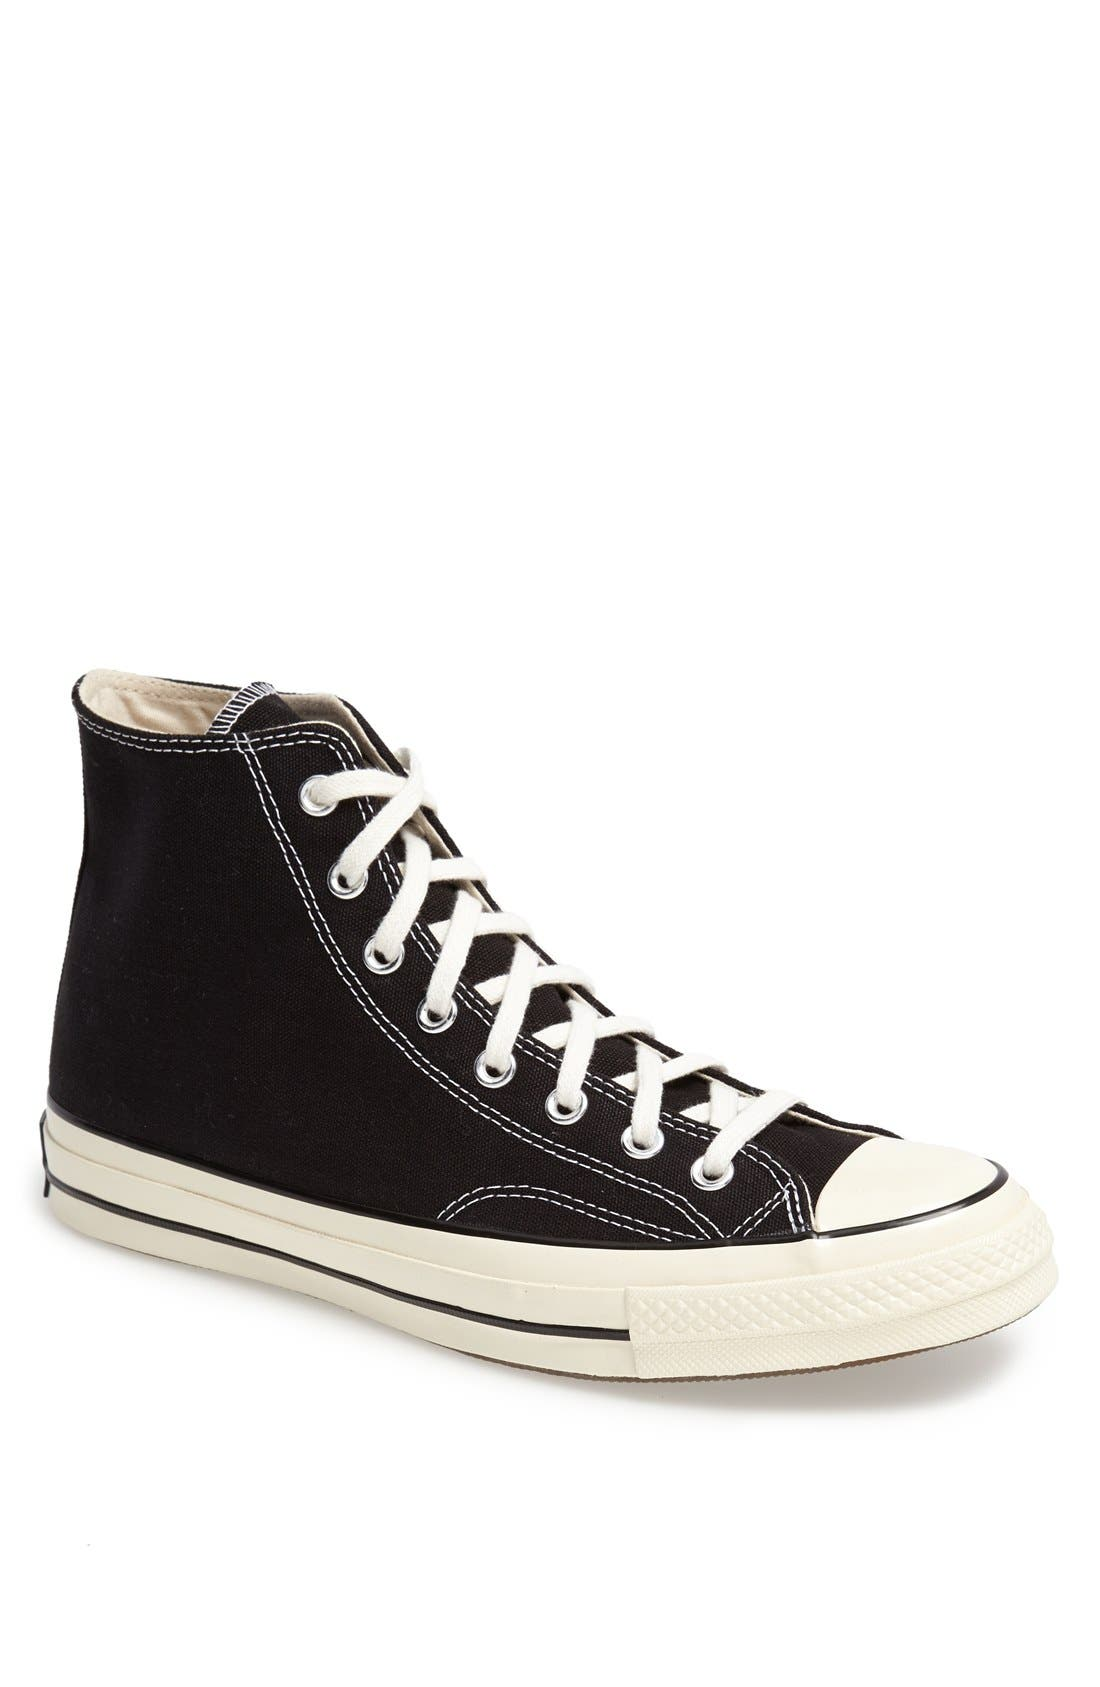 Chuck Taylor<sup>®</sup> All Star<sup>®</sup> '70 High Sneaker,                             Main thumbnail 1, color,                             Black